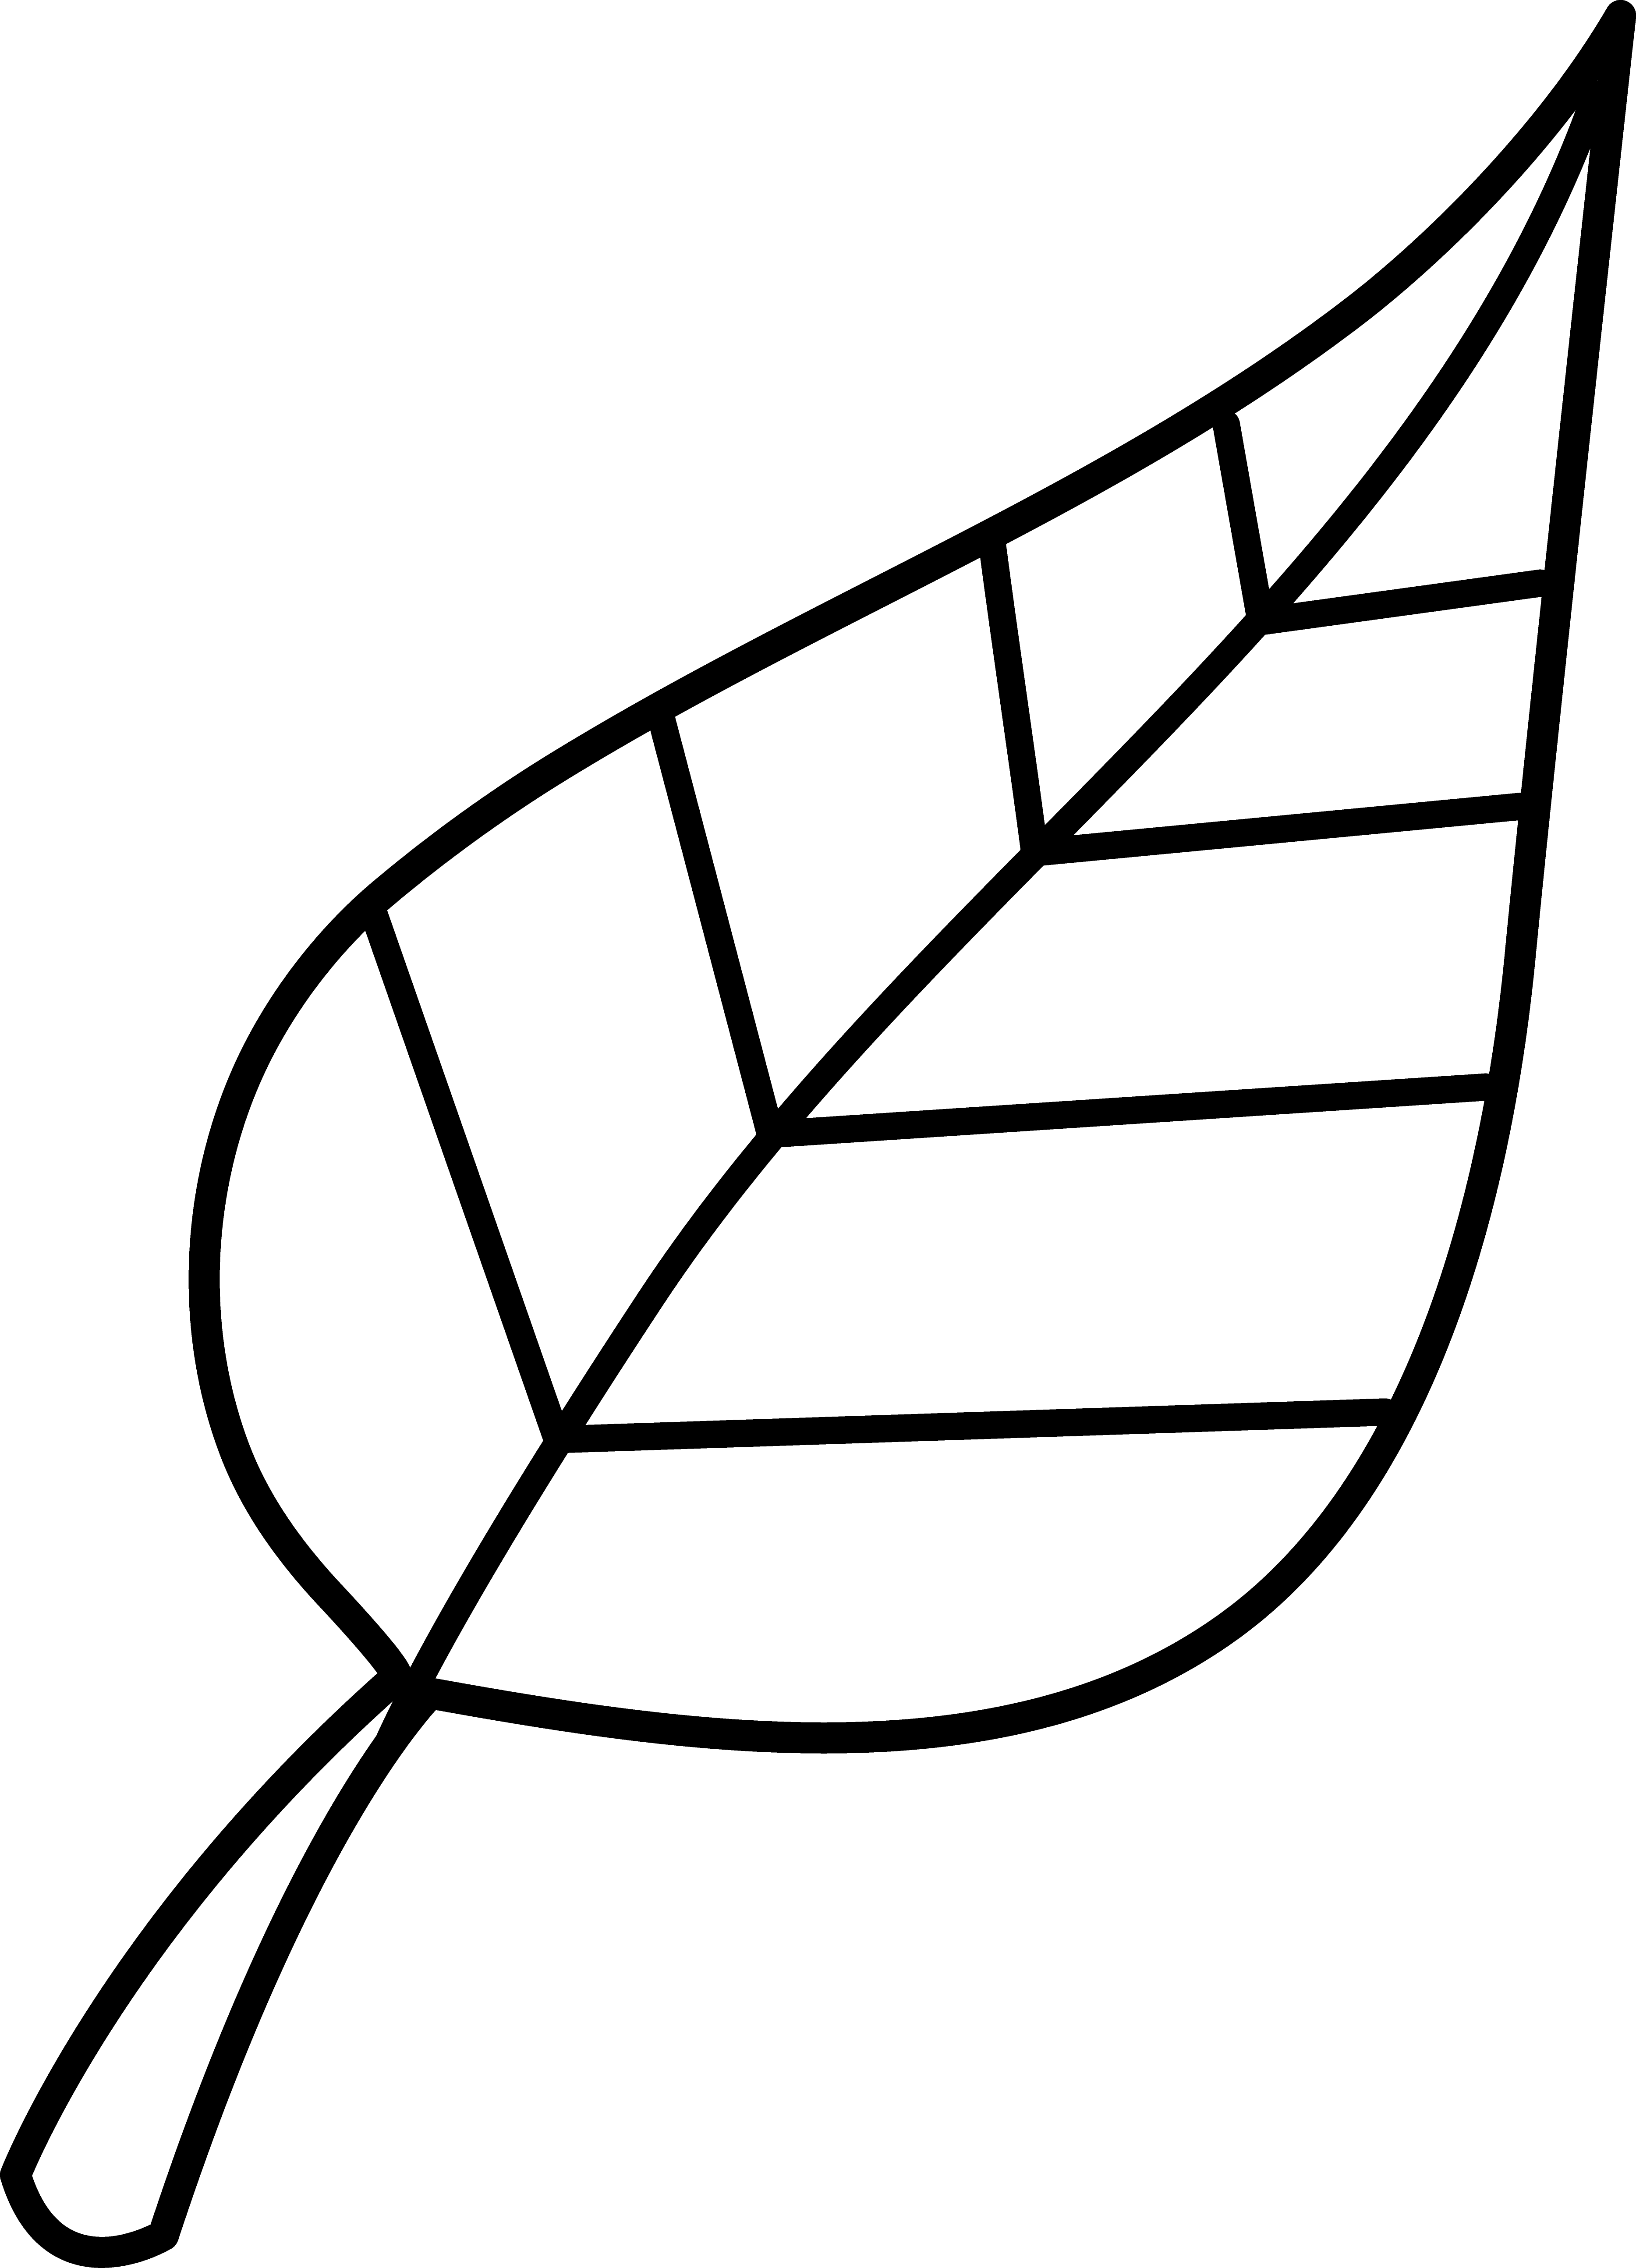 Colorable Line Art of a Leaf.